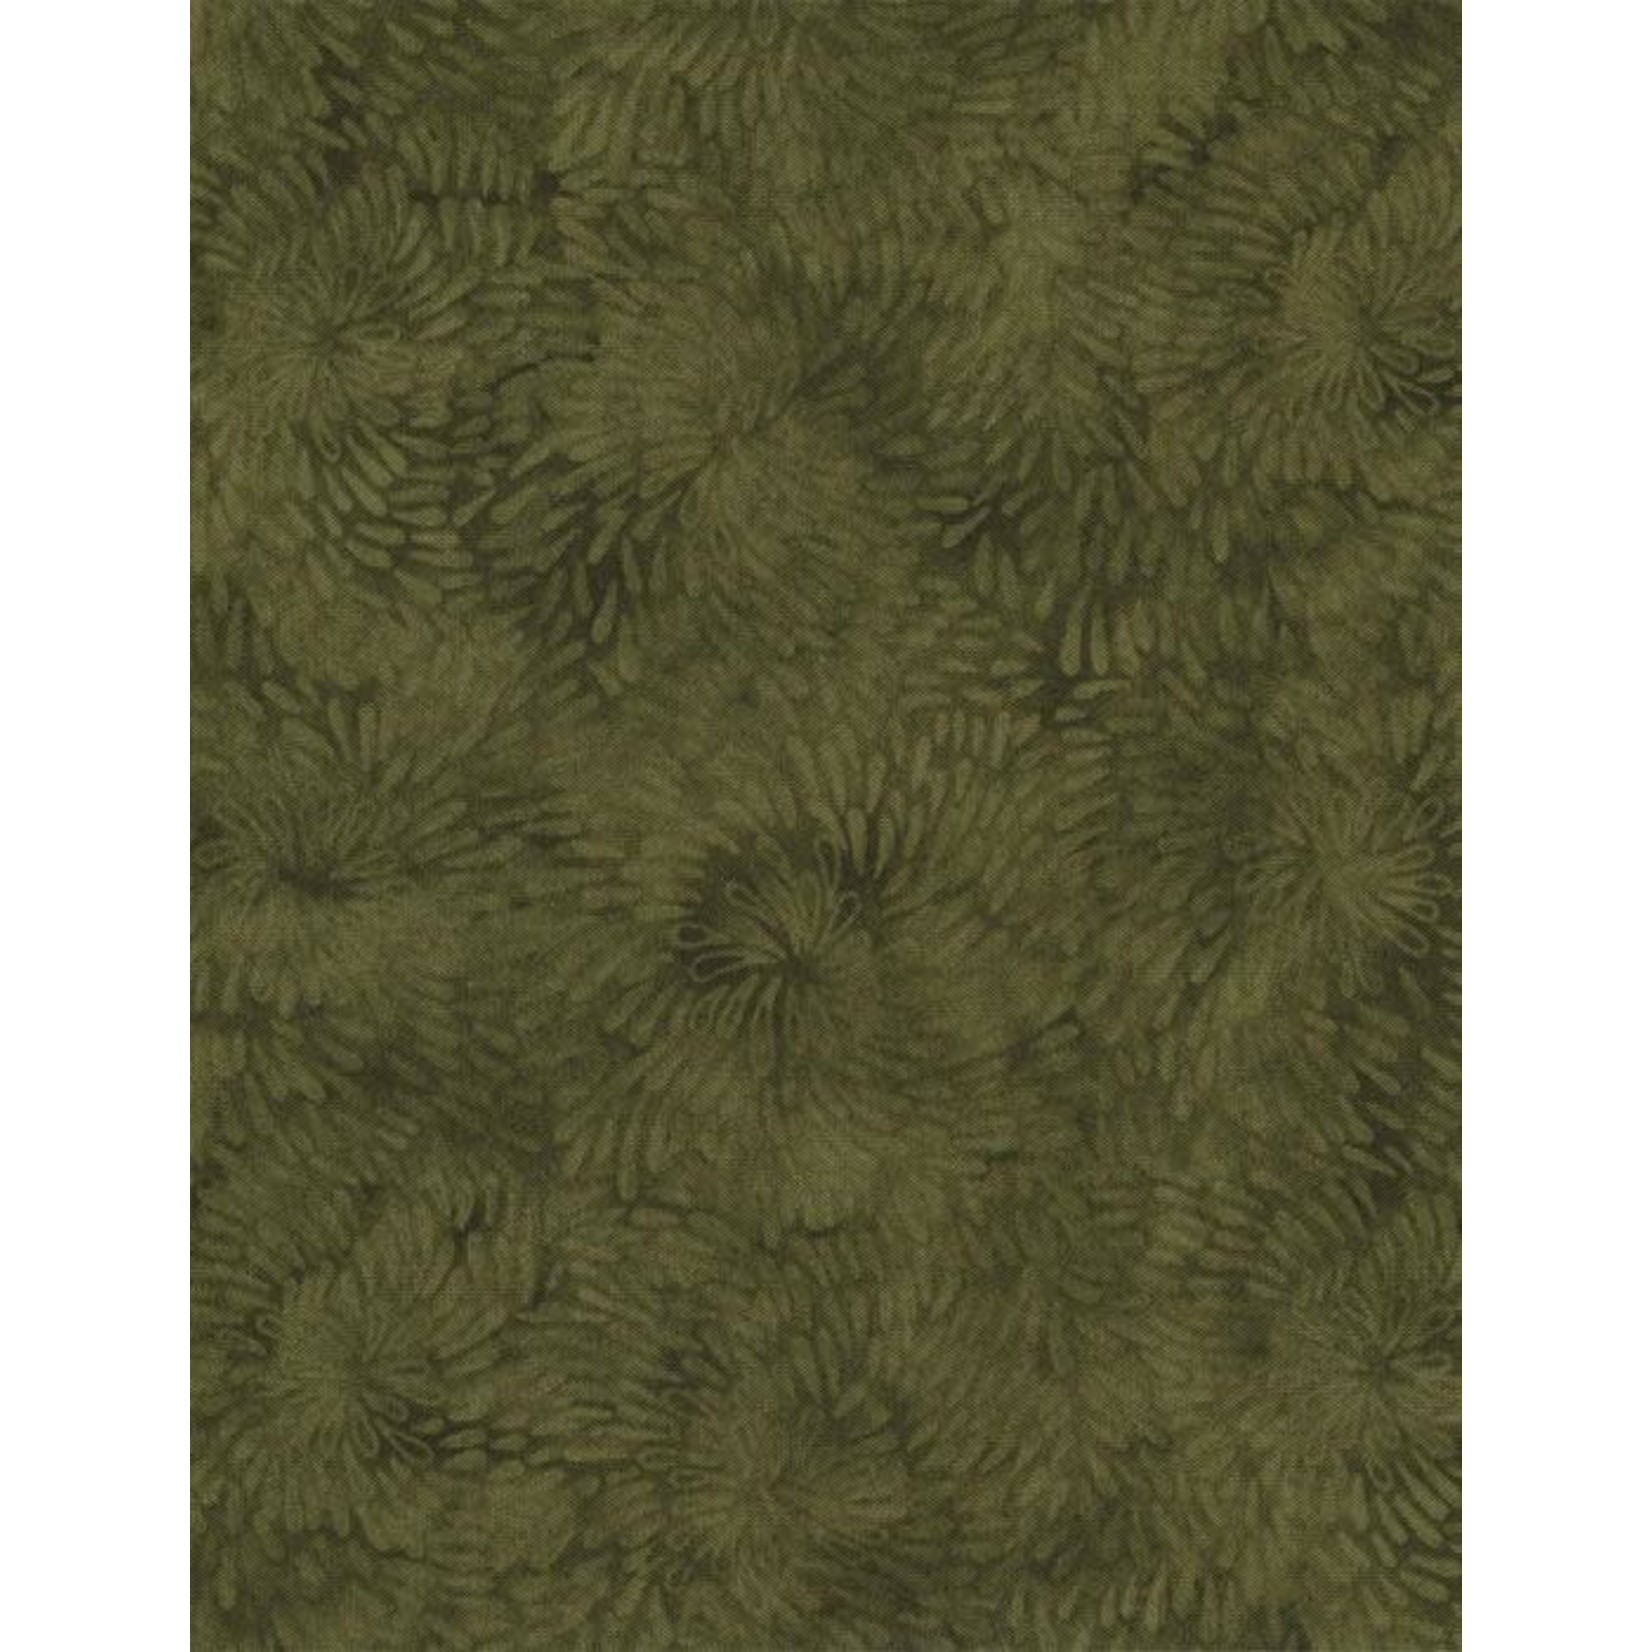 Timeless Treasures TAPESTRY, Olive, PER CM or $20/M